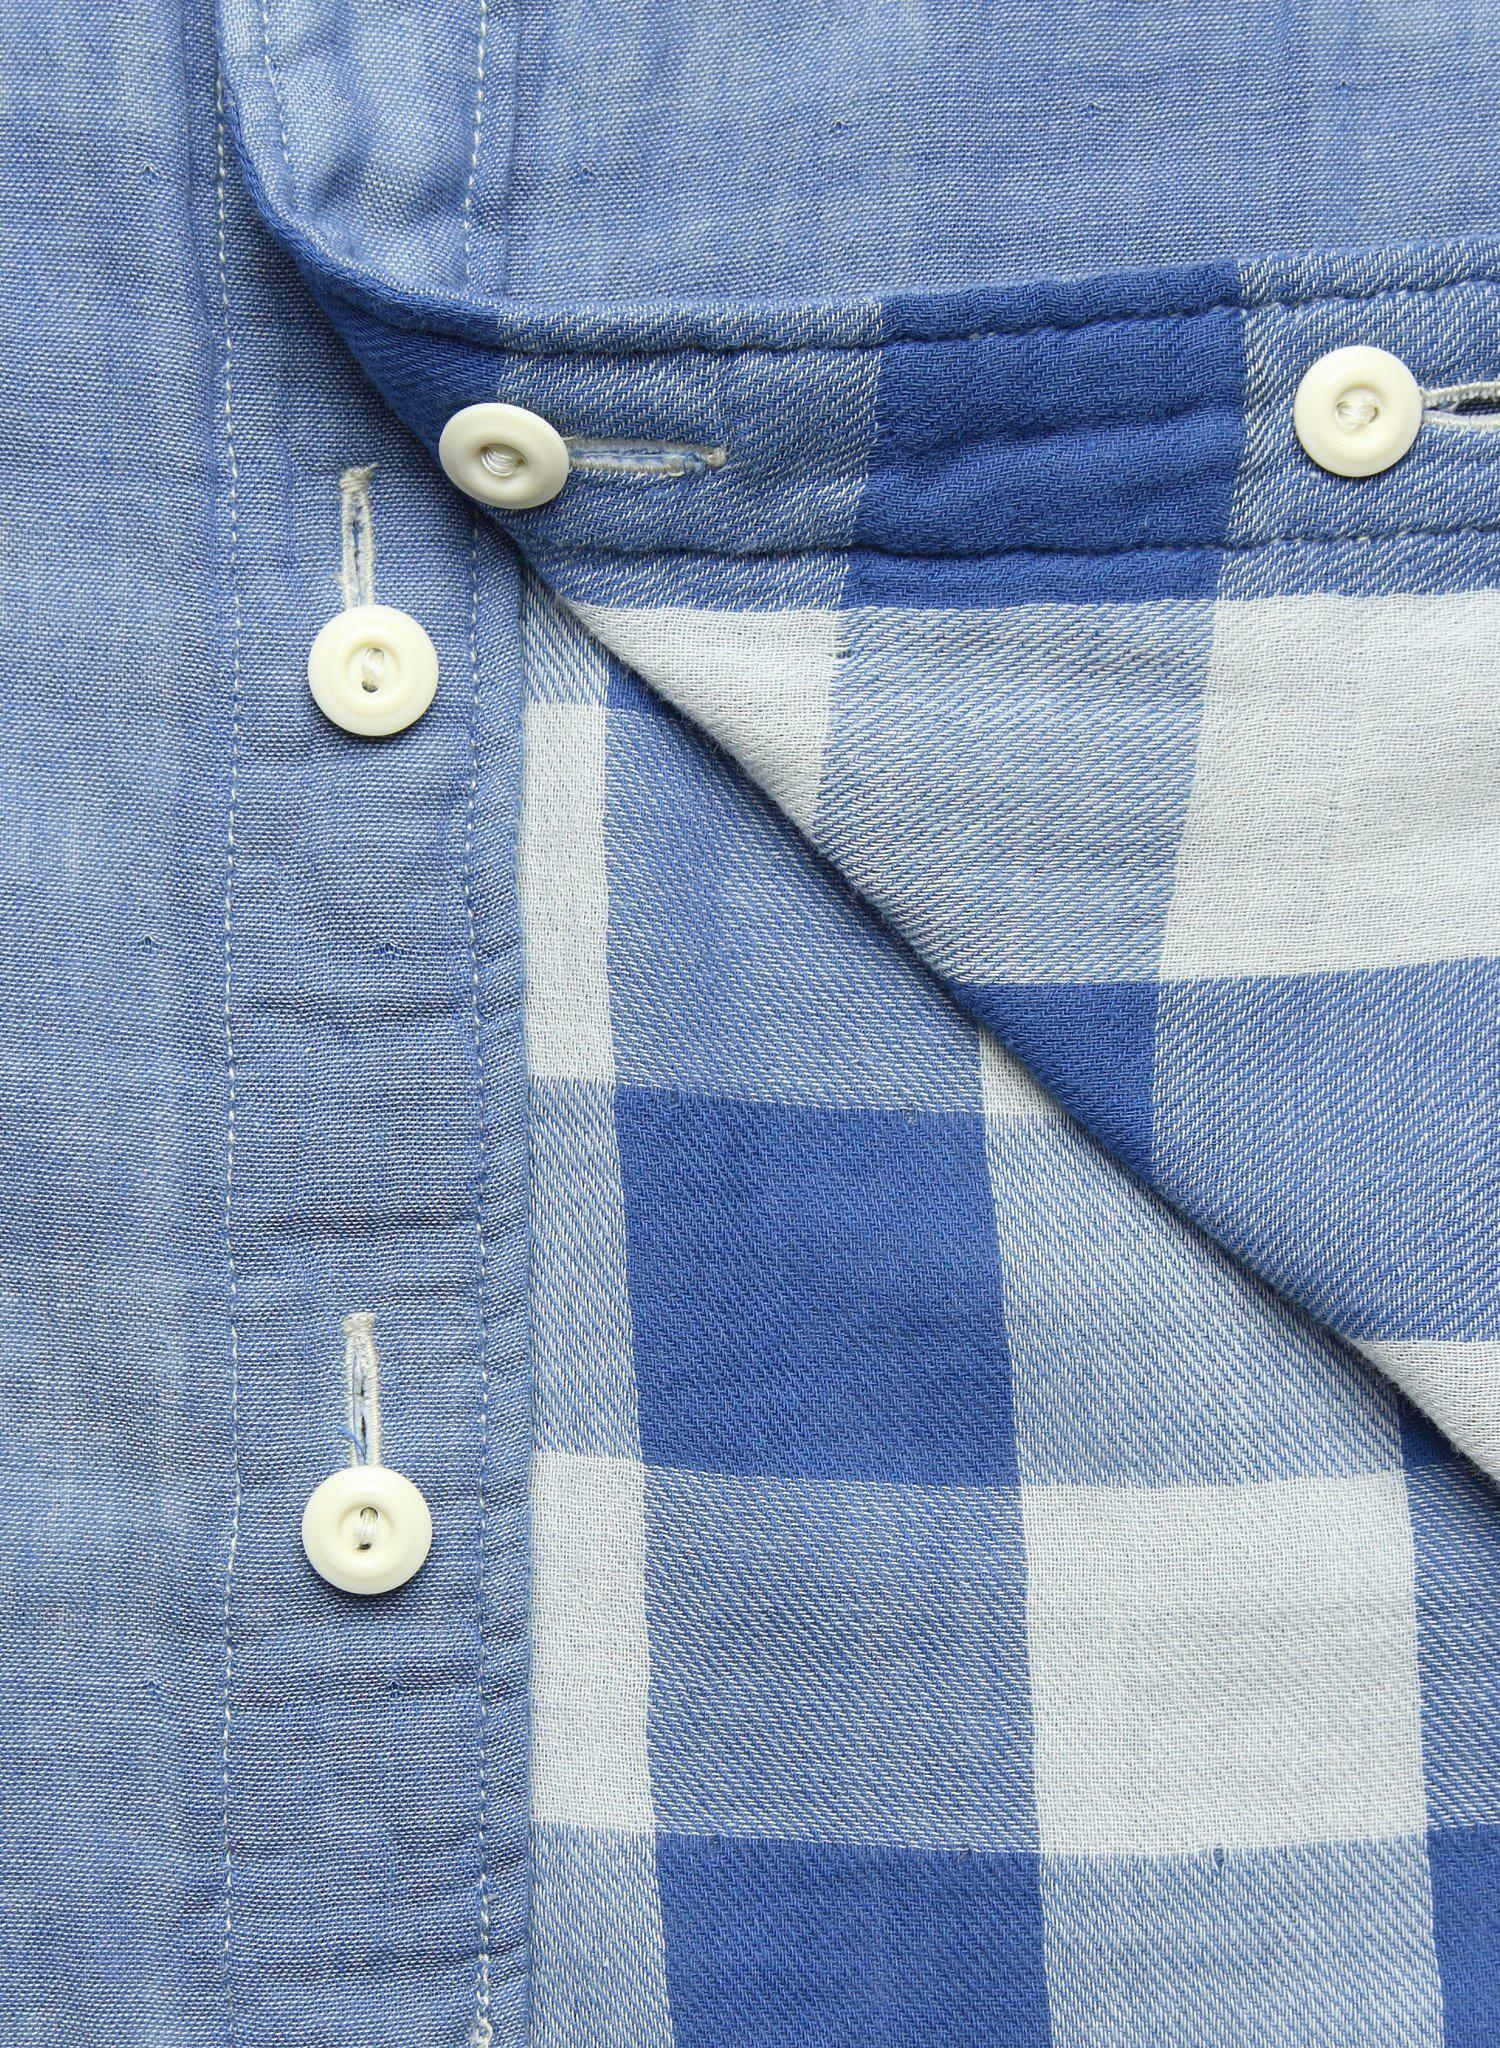 718d4d9a4e Lyst - Faherty Brand Belmar Workshirt - Chambray in Blue for Men